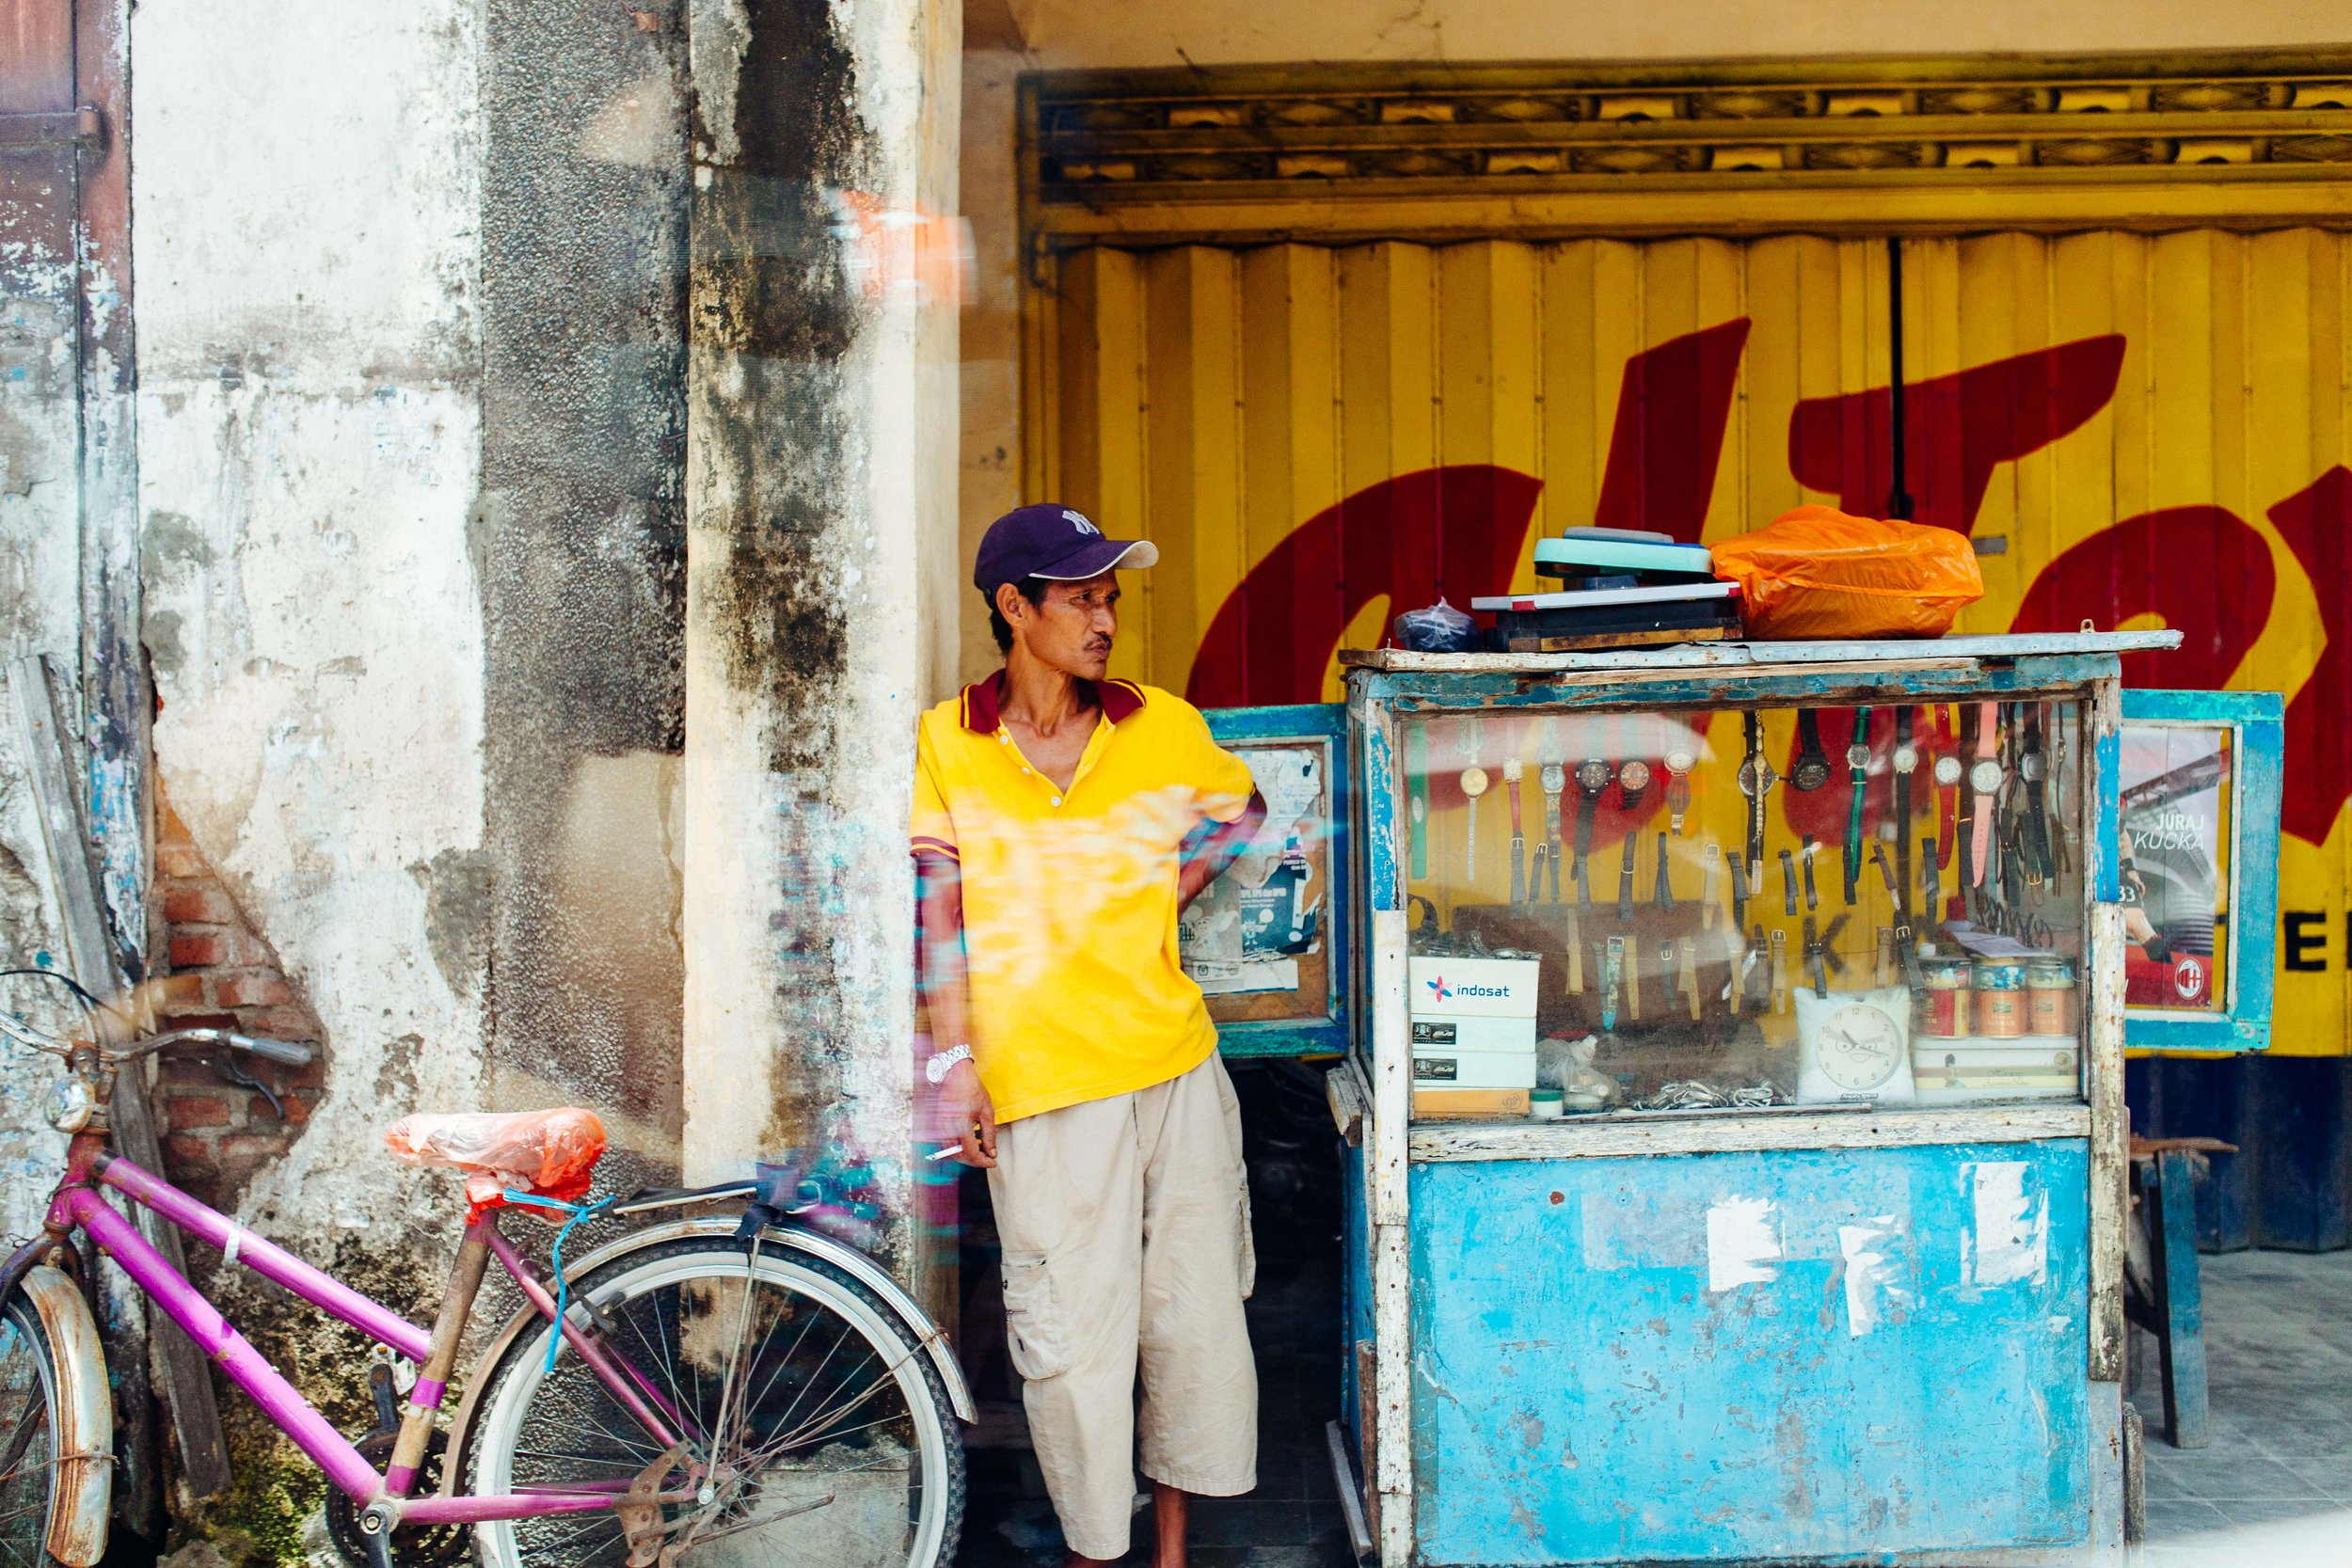 watches for sale on the way to Gili Islands